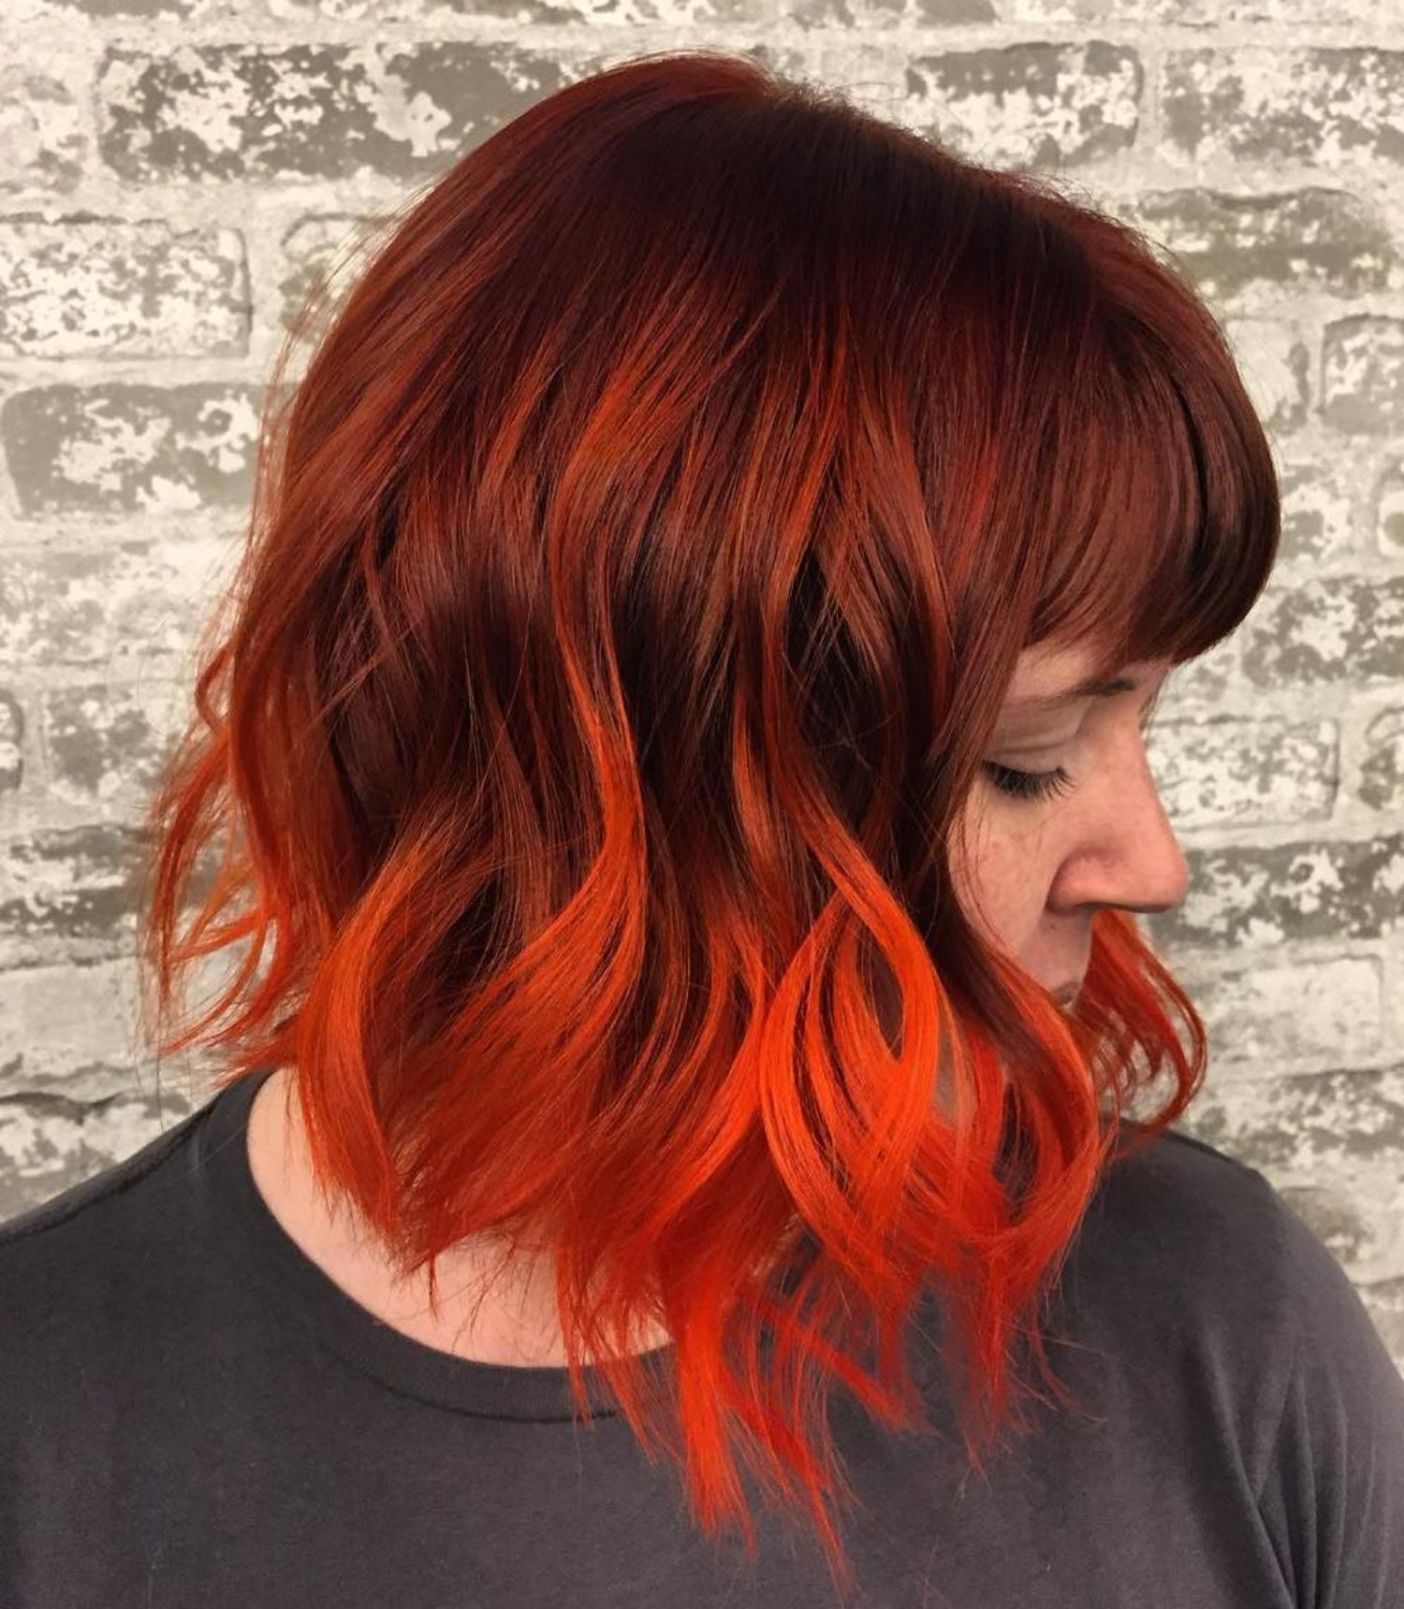 24+ Red orange ombre short hair inspirations